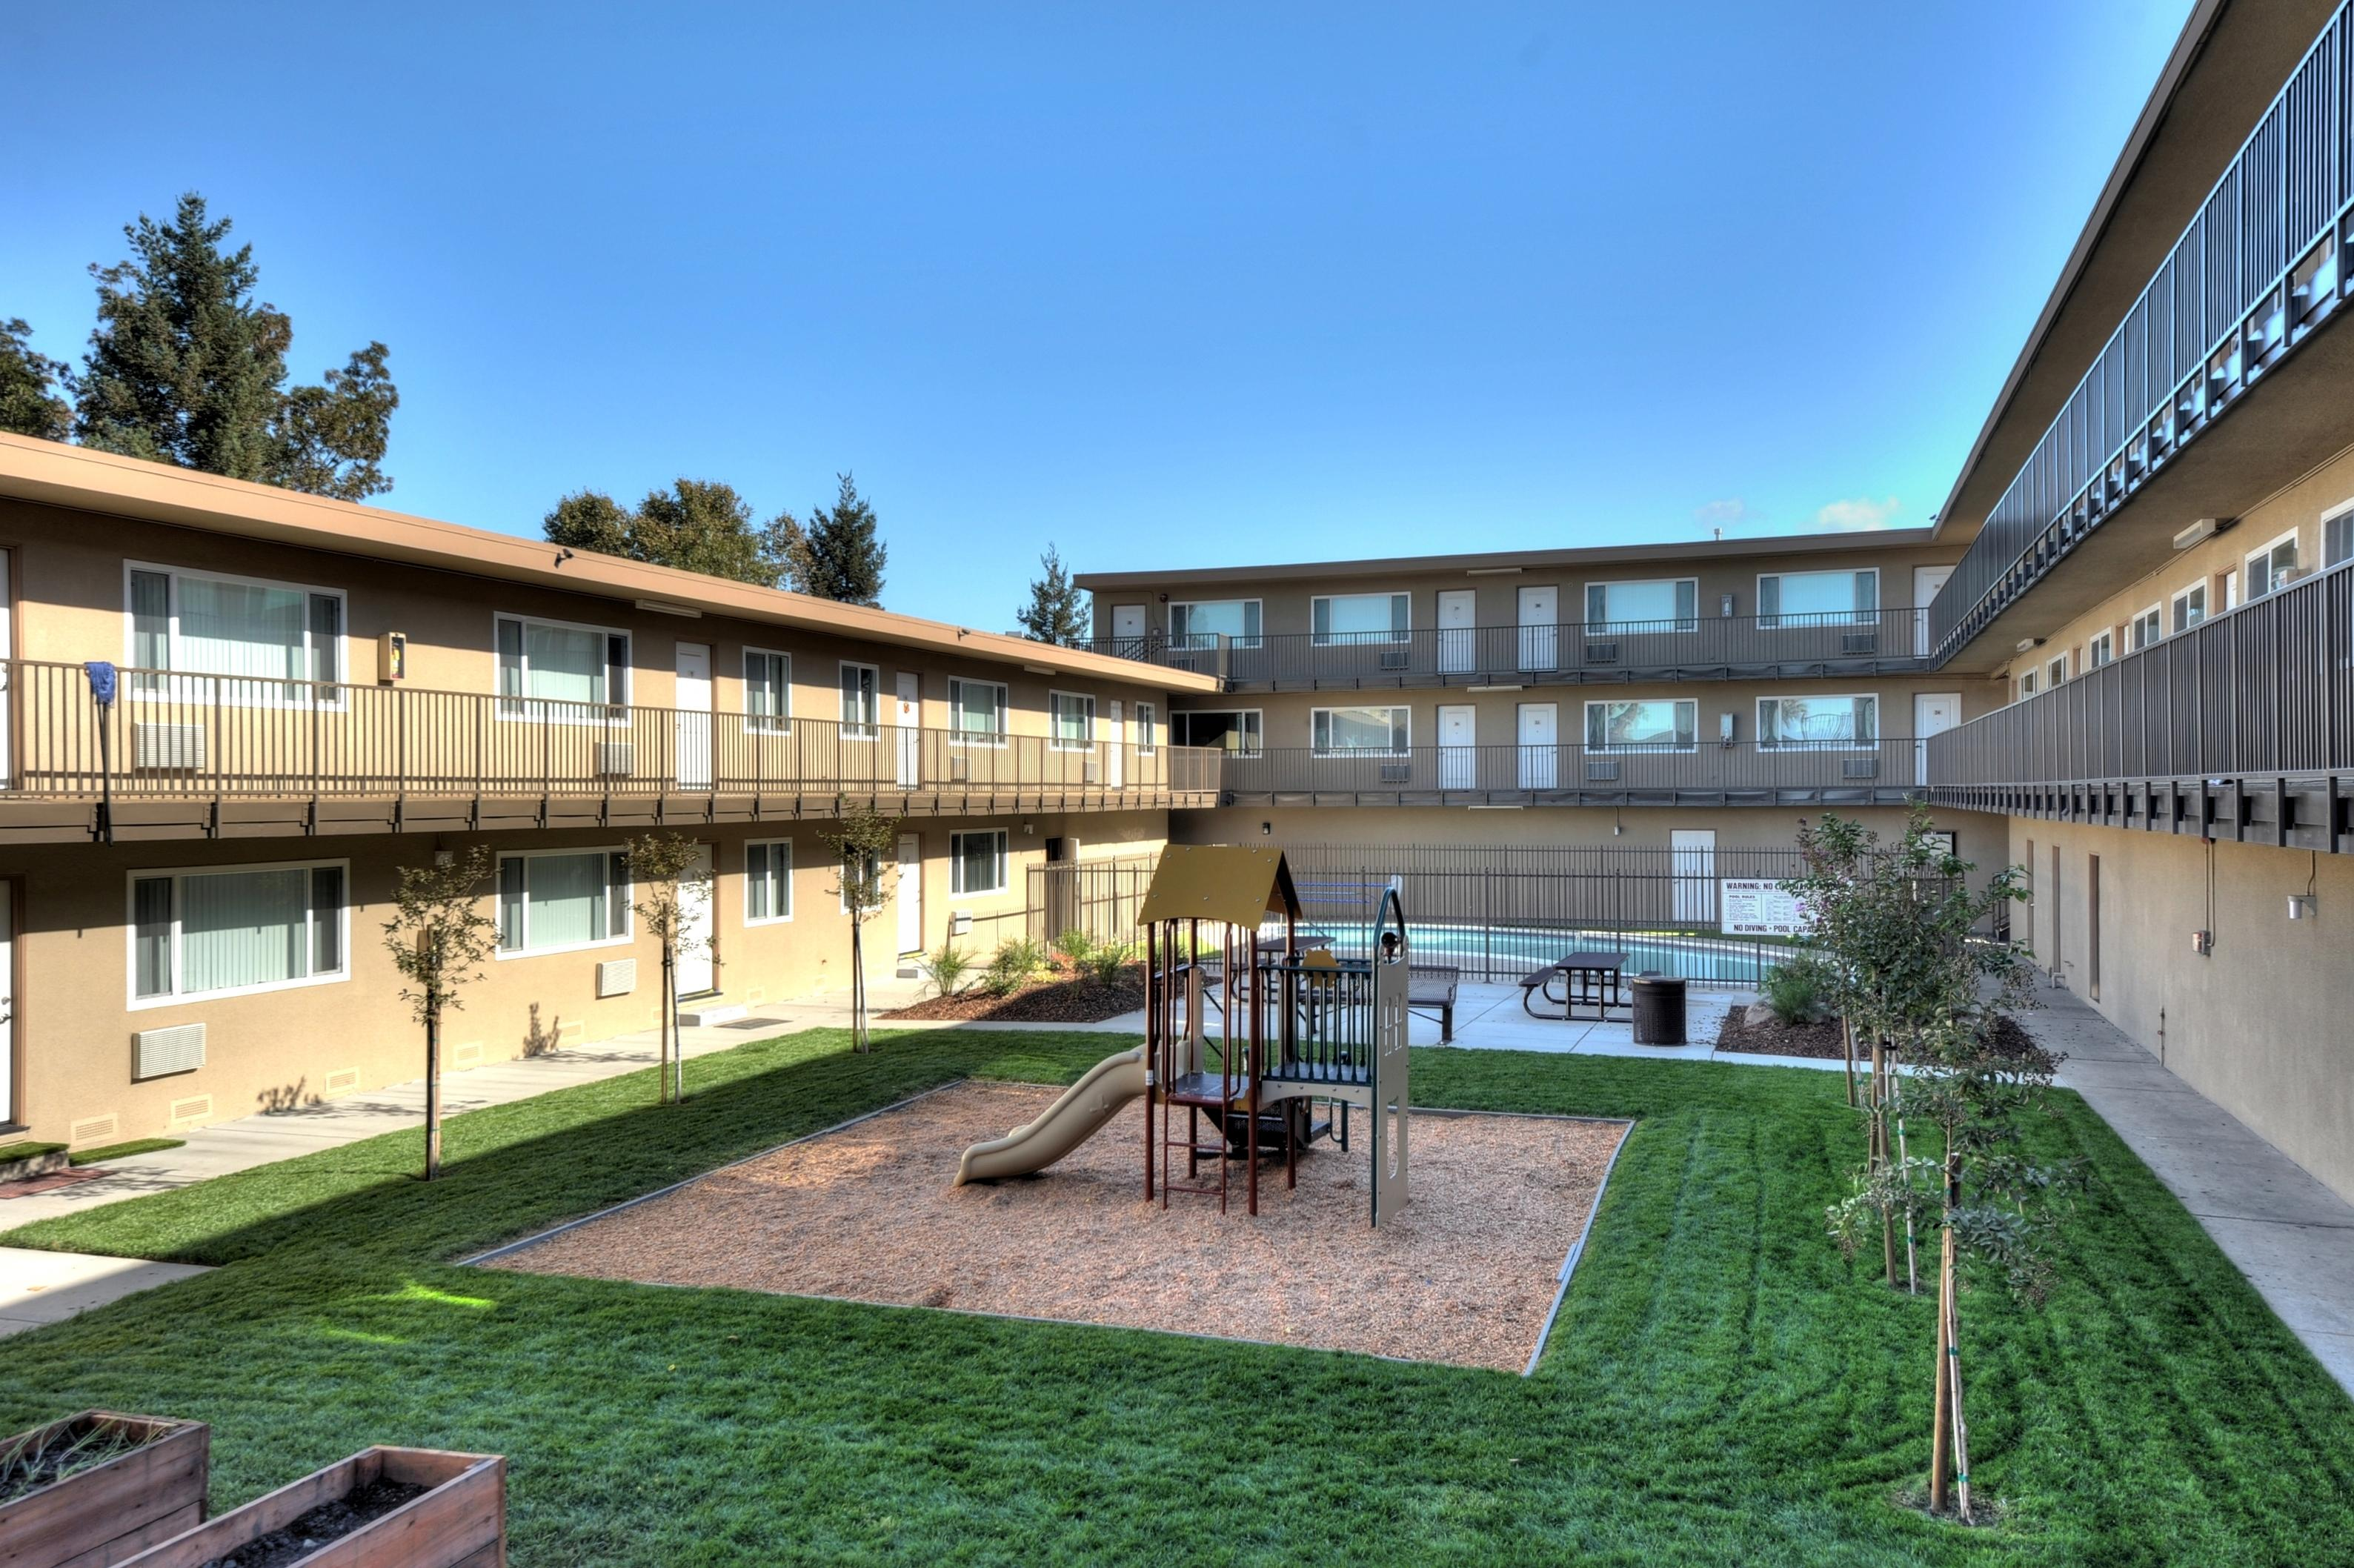 2738 Kollmar Dr San Jose CA-print-004-Apartment Center Court-1500x999-300dpi.jpg